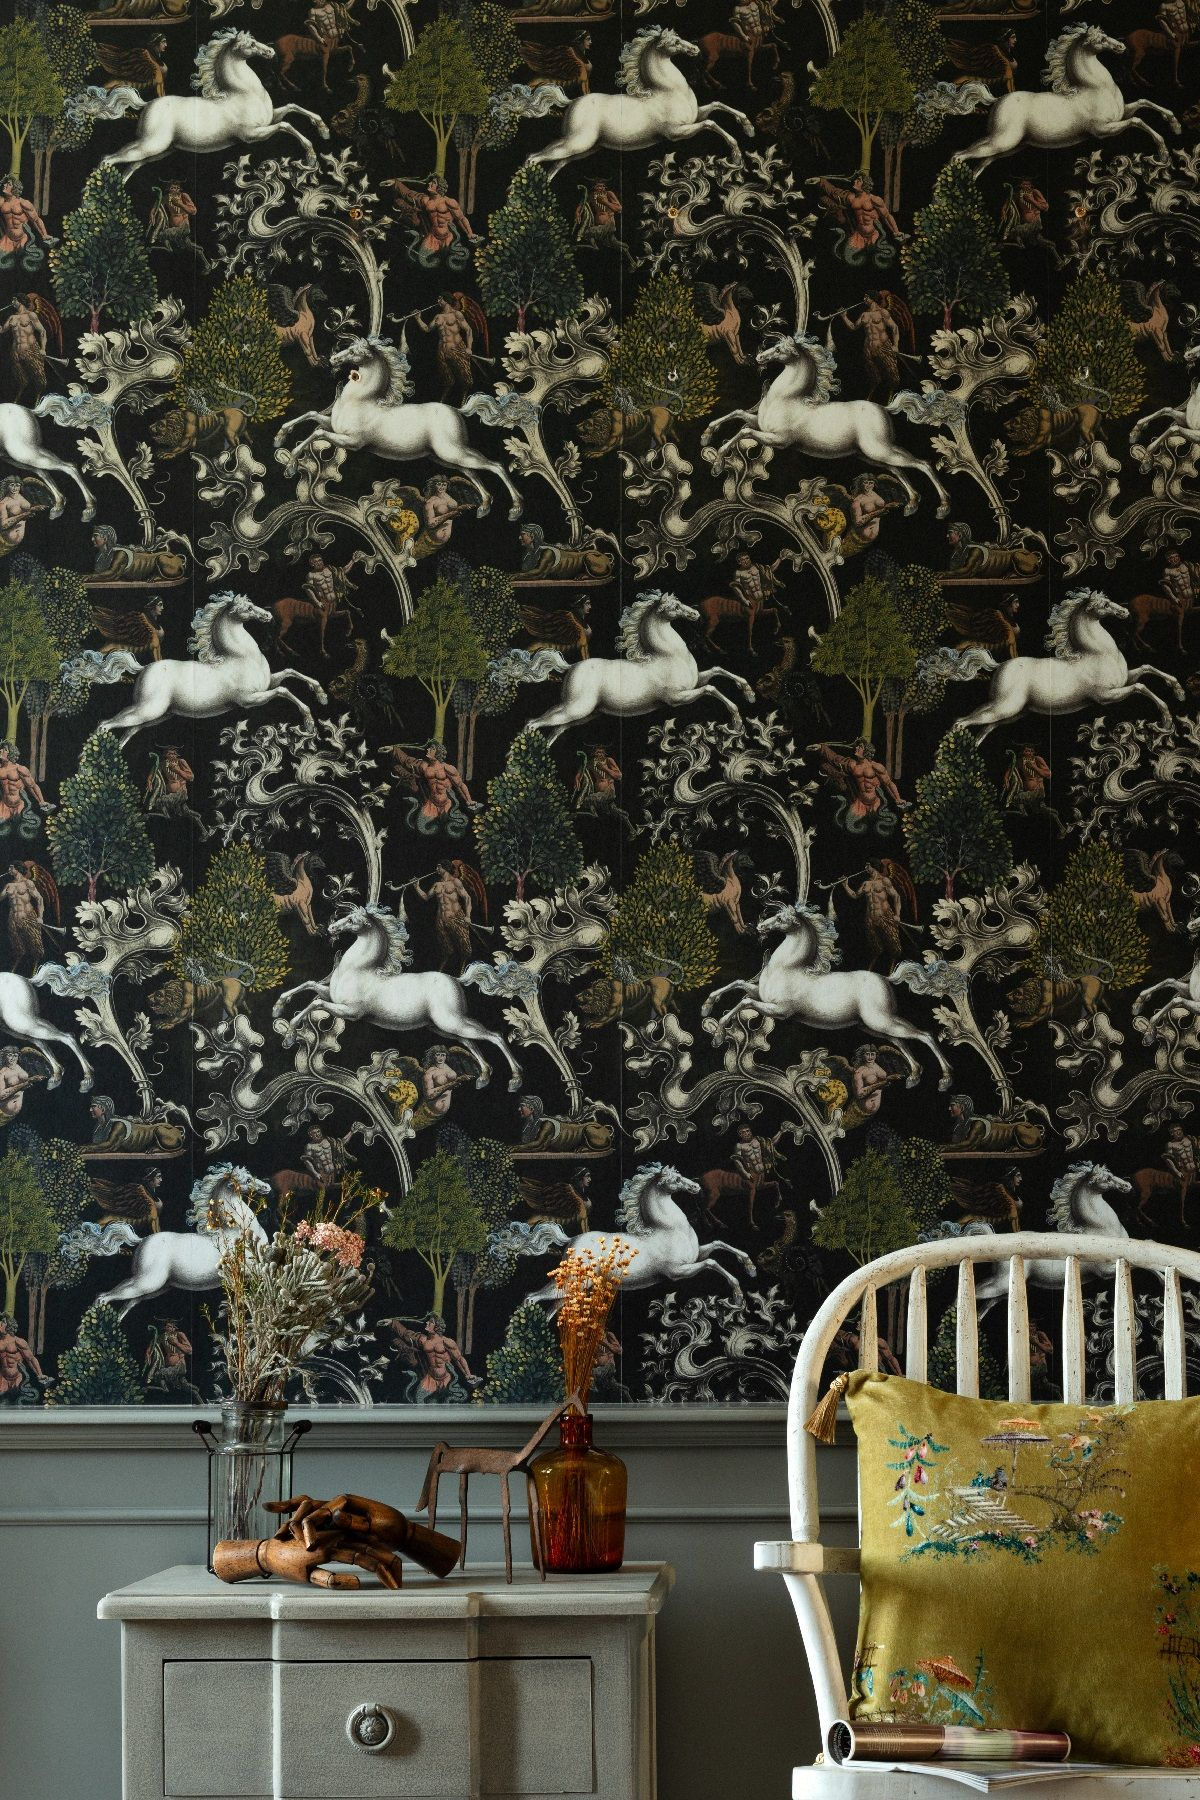 Imaginarium Wallpaper in 2020 Grey wallpaper, Wallpaper